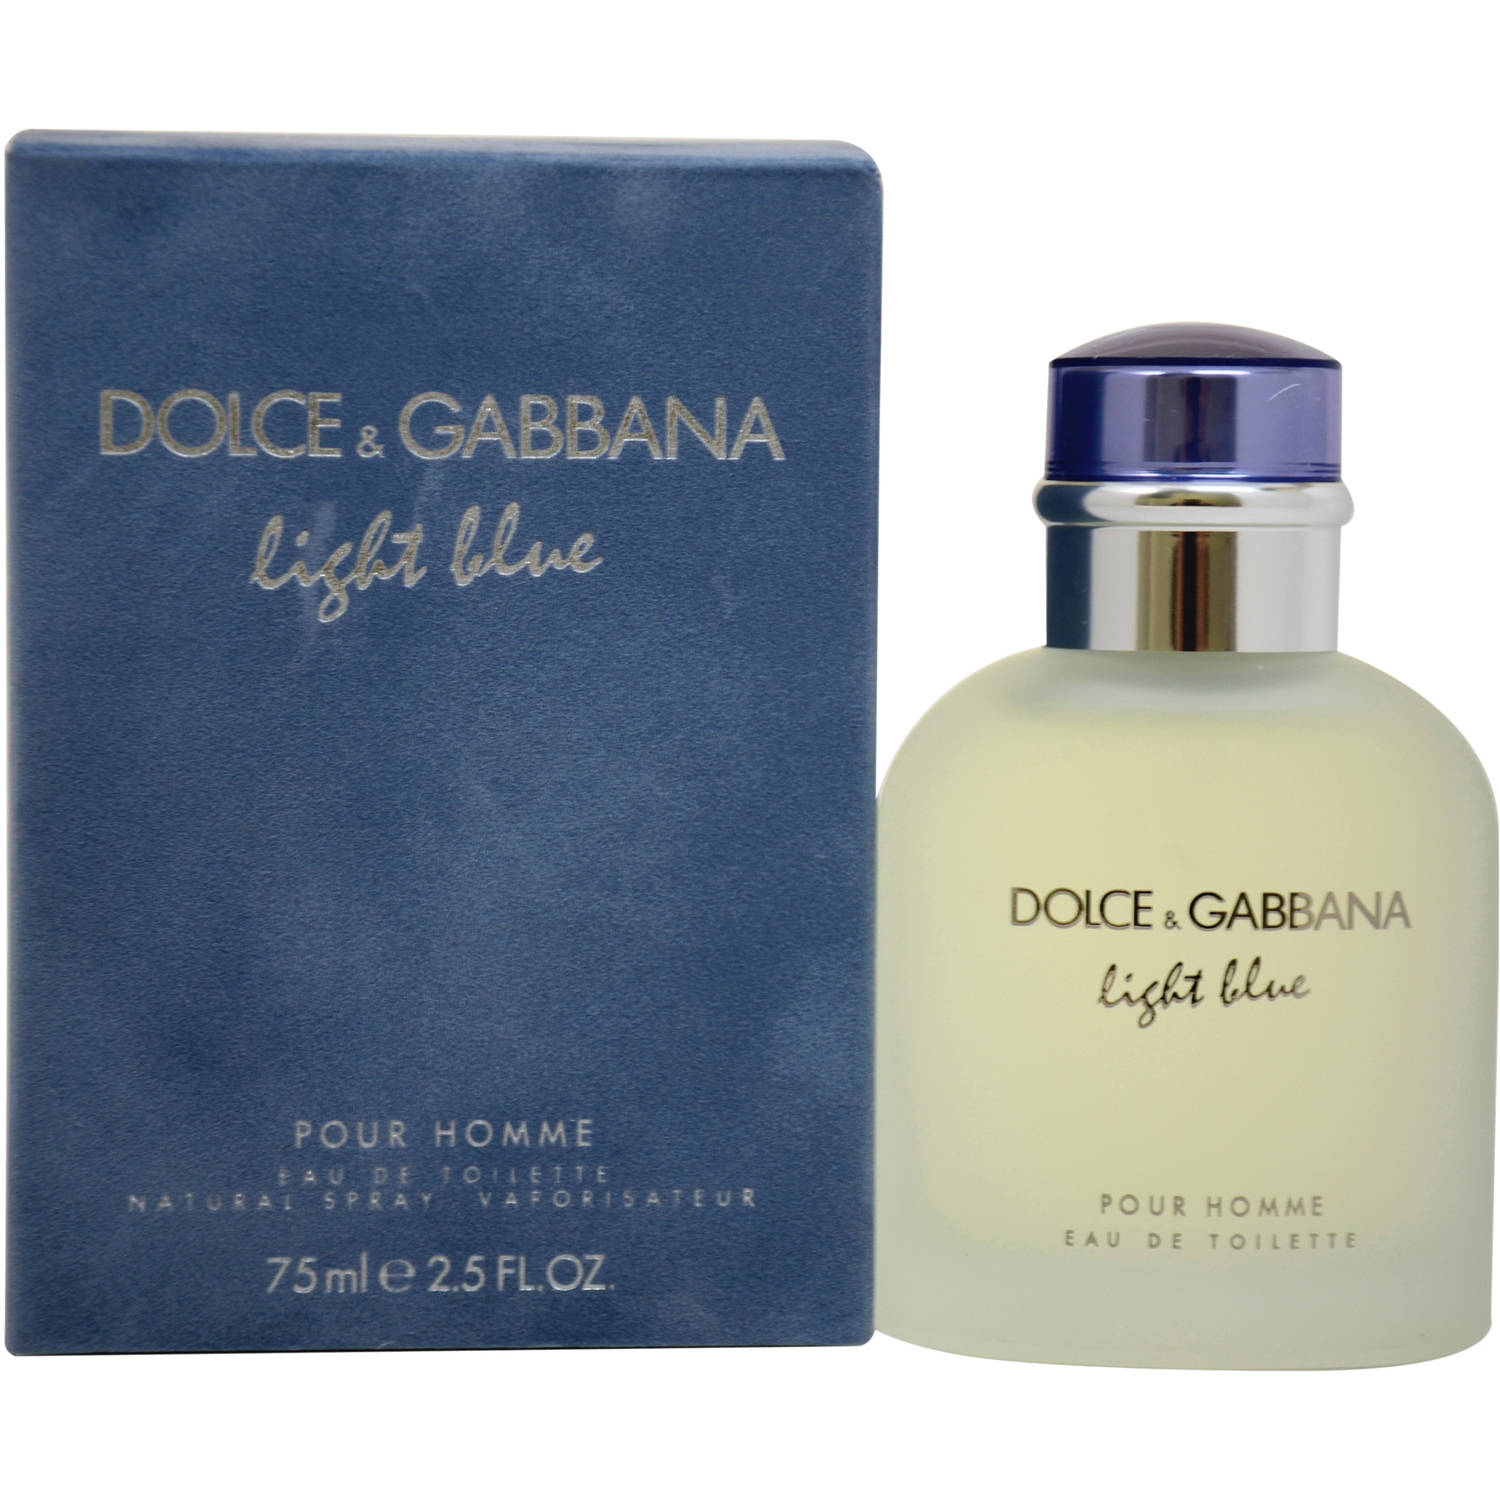 Dolce & Gabbana Light Blue Pour Homme Eau de Toilette Spray, 2.5 fl oz